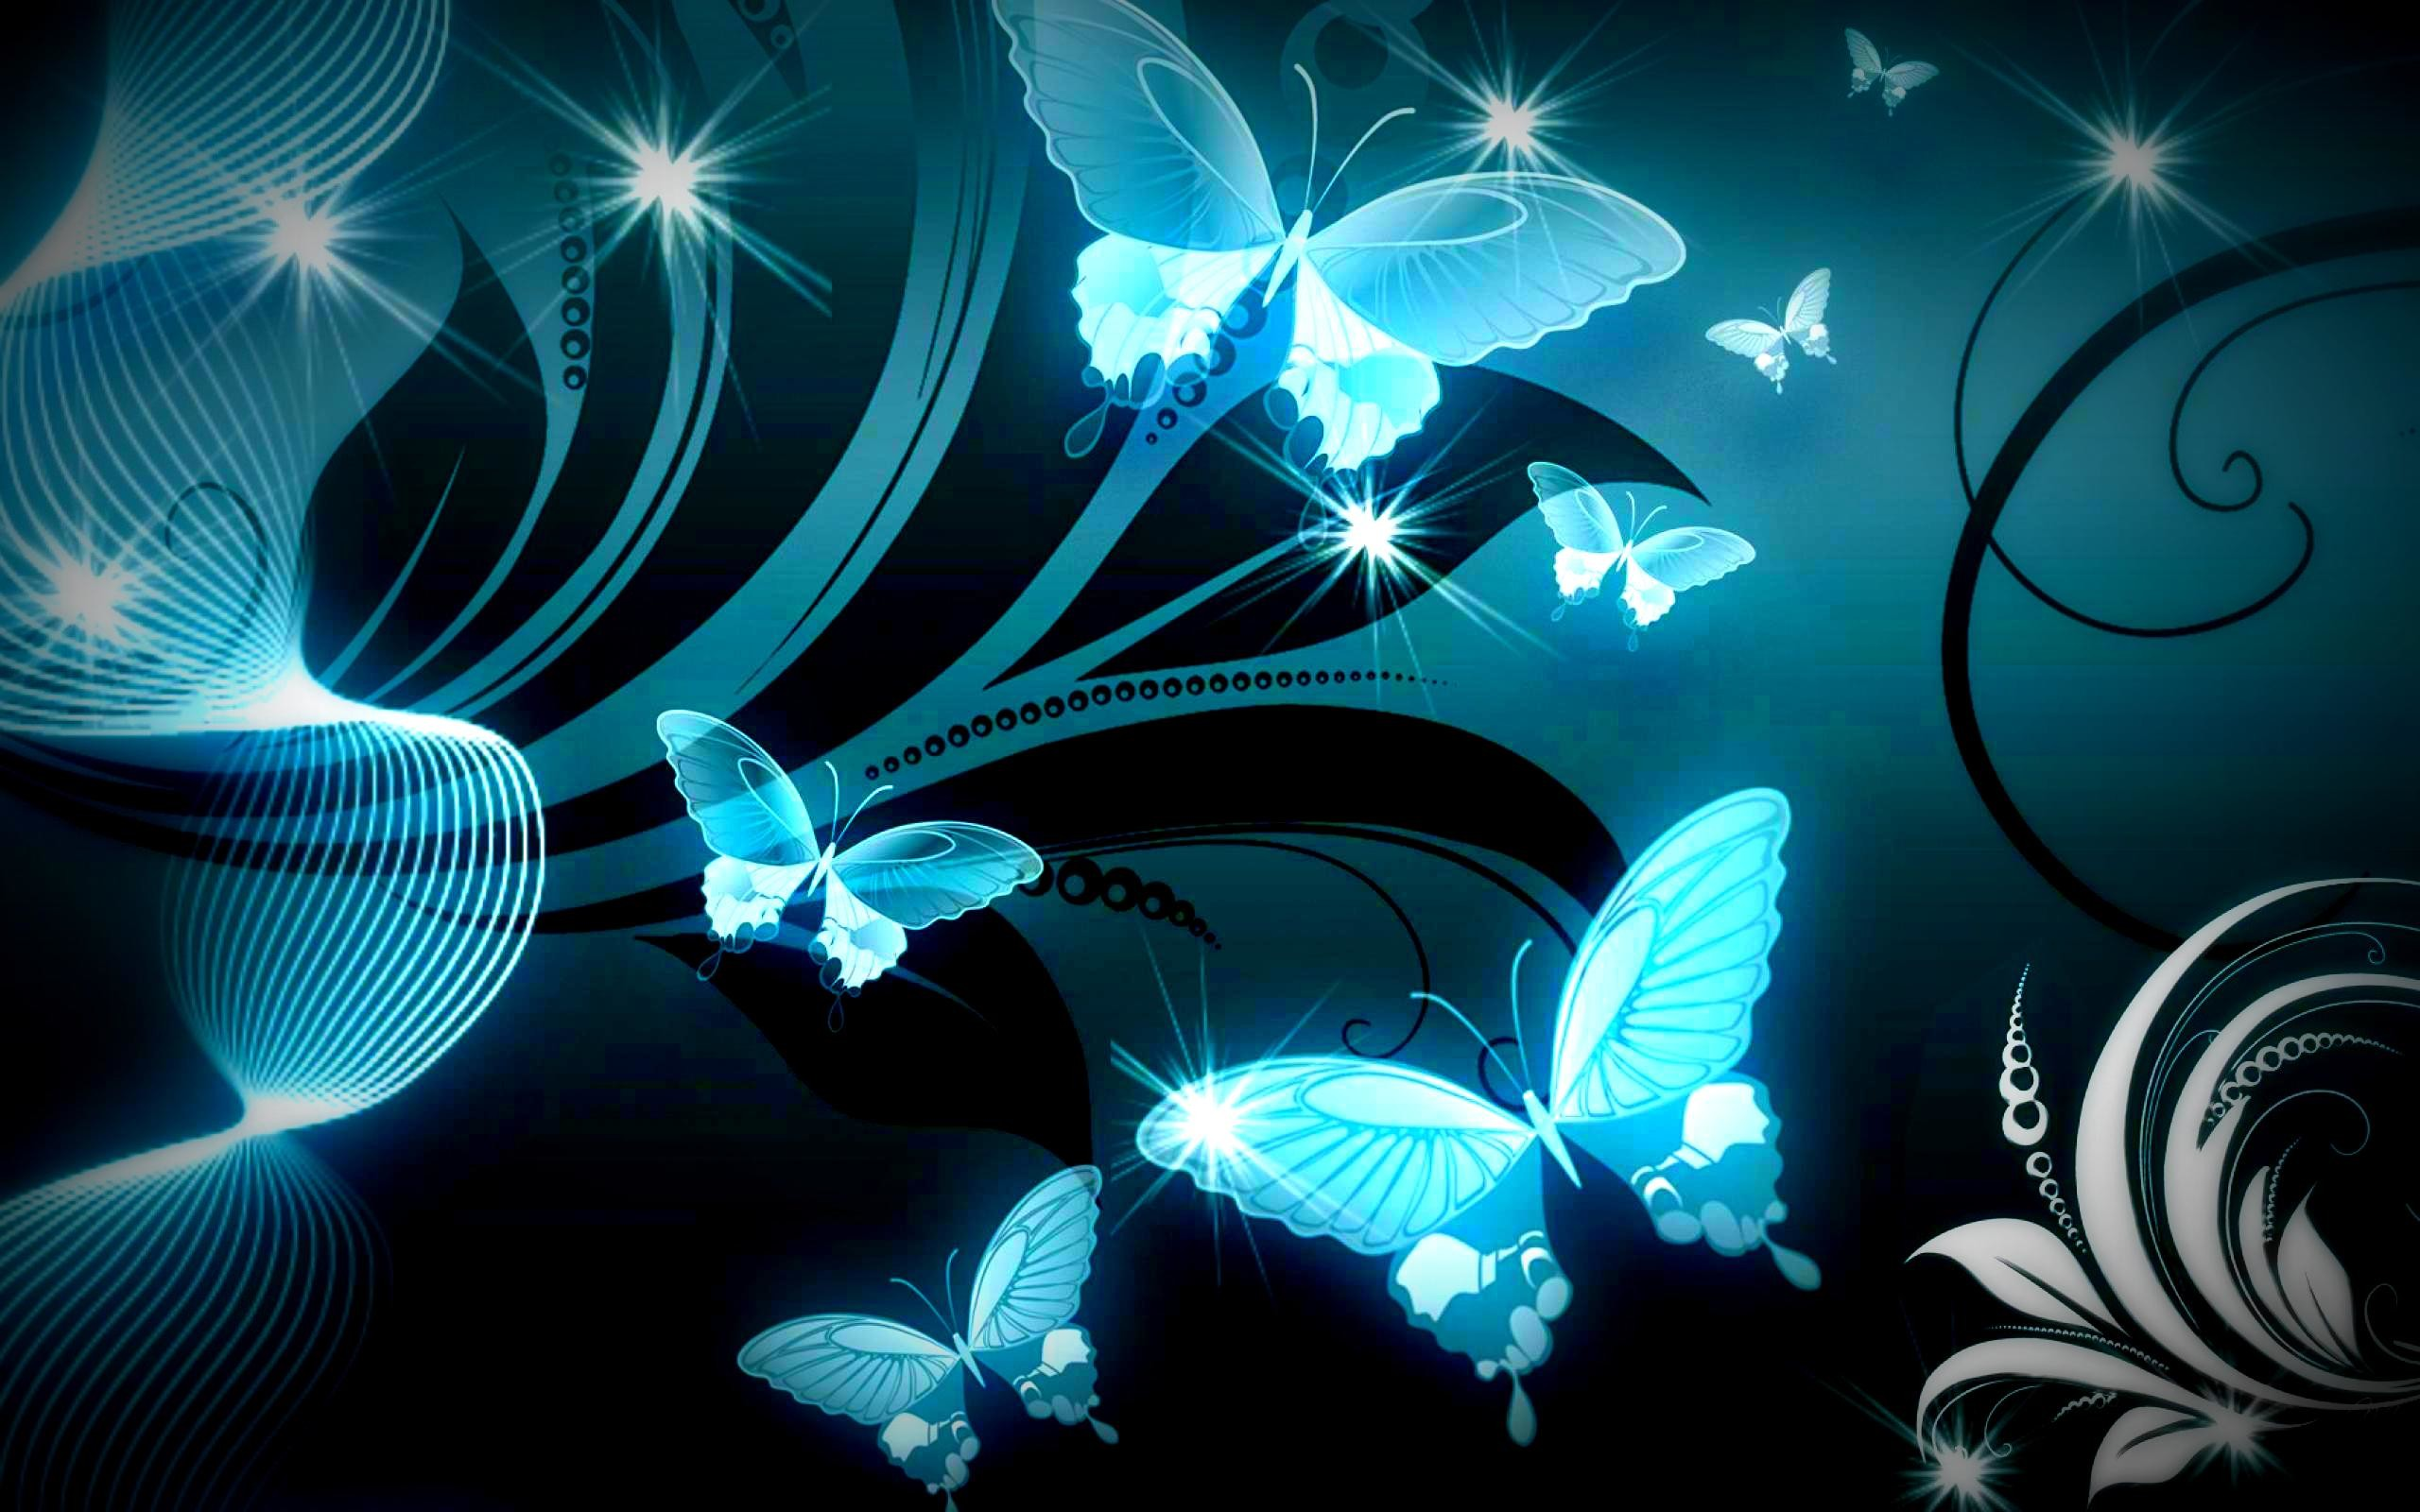 Res: 2560x1600, Butterfly Picture For Desktop Wallpaper 2560 x 1600 px 1.2 MB red purple crystal  blue pink